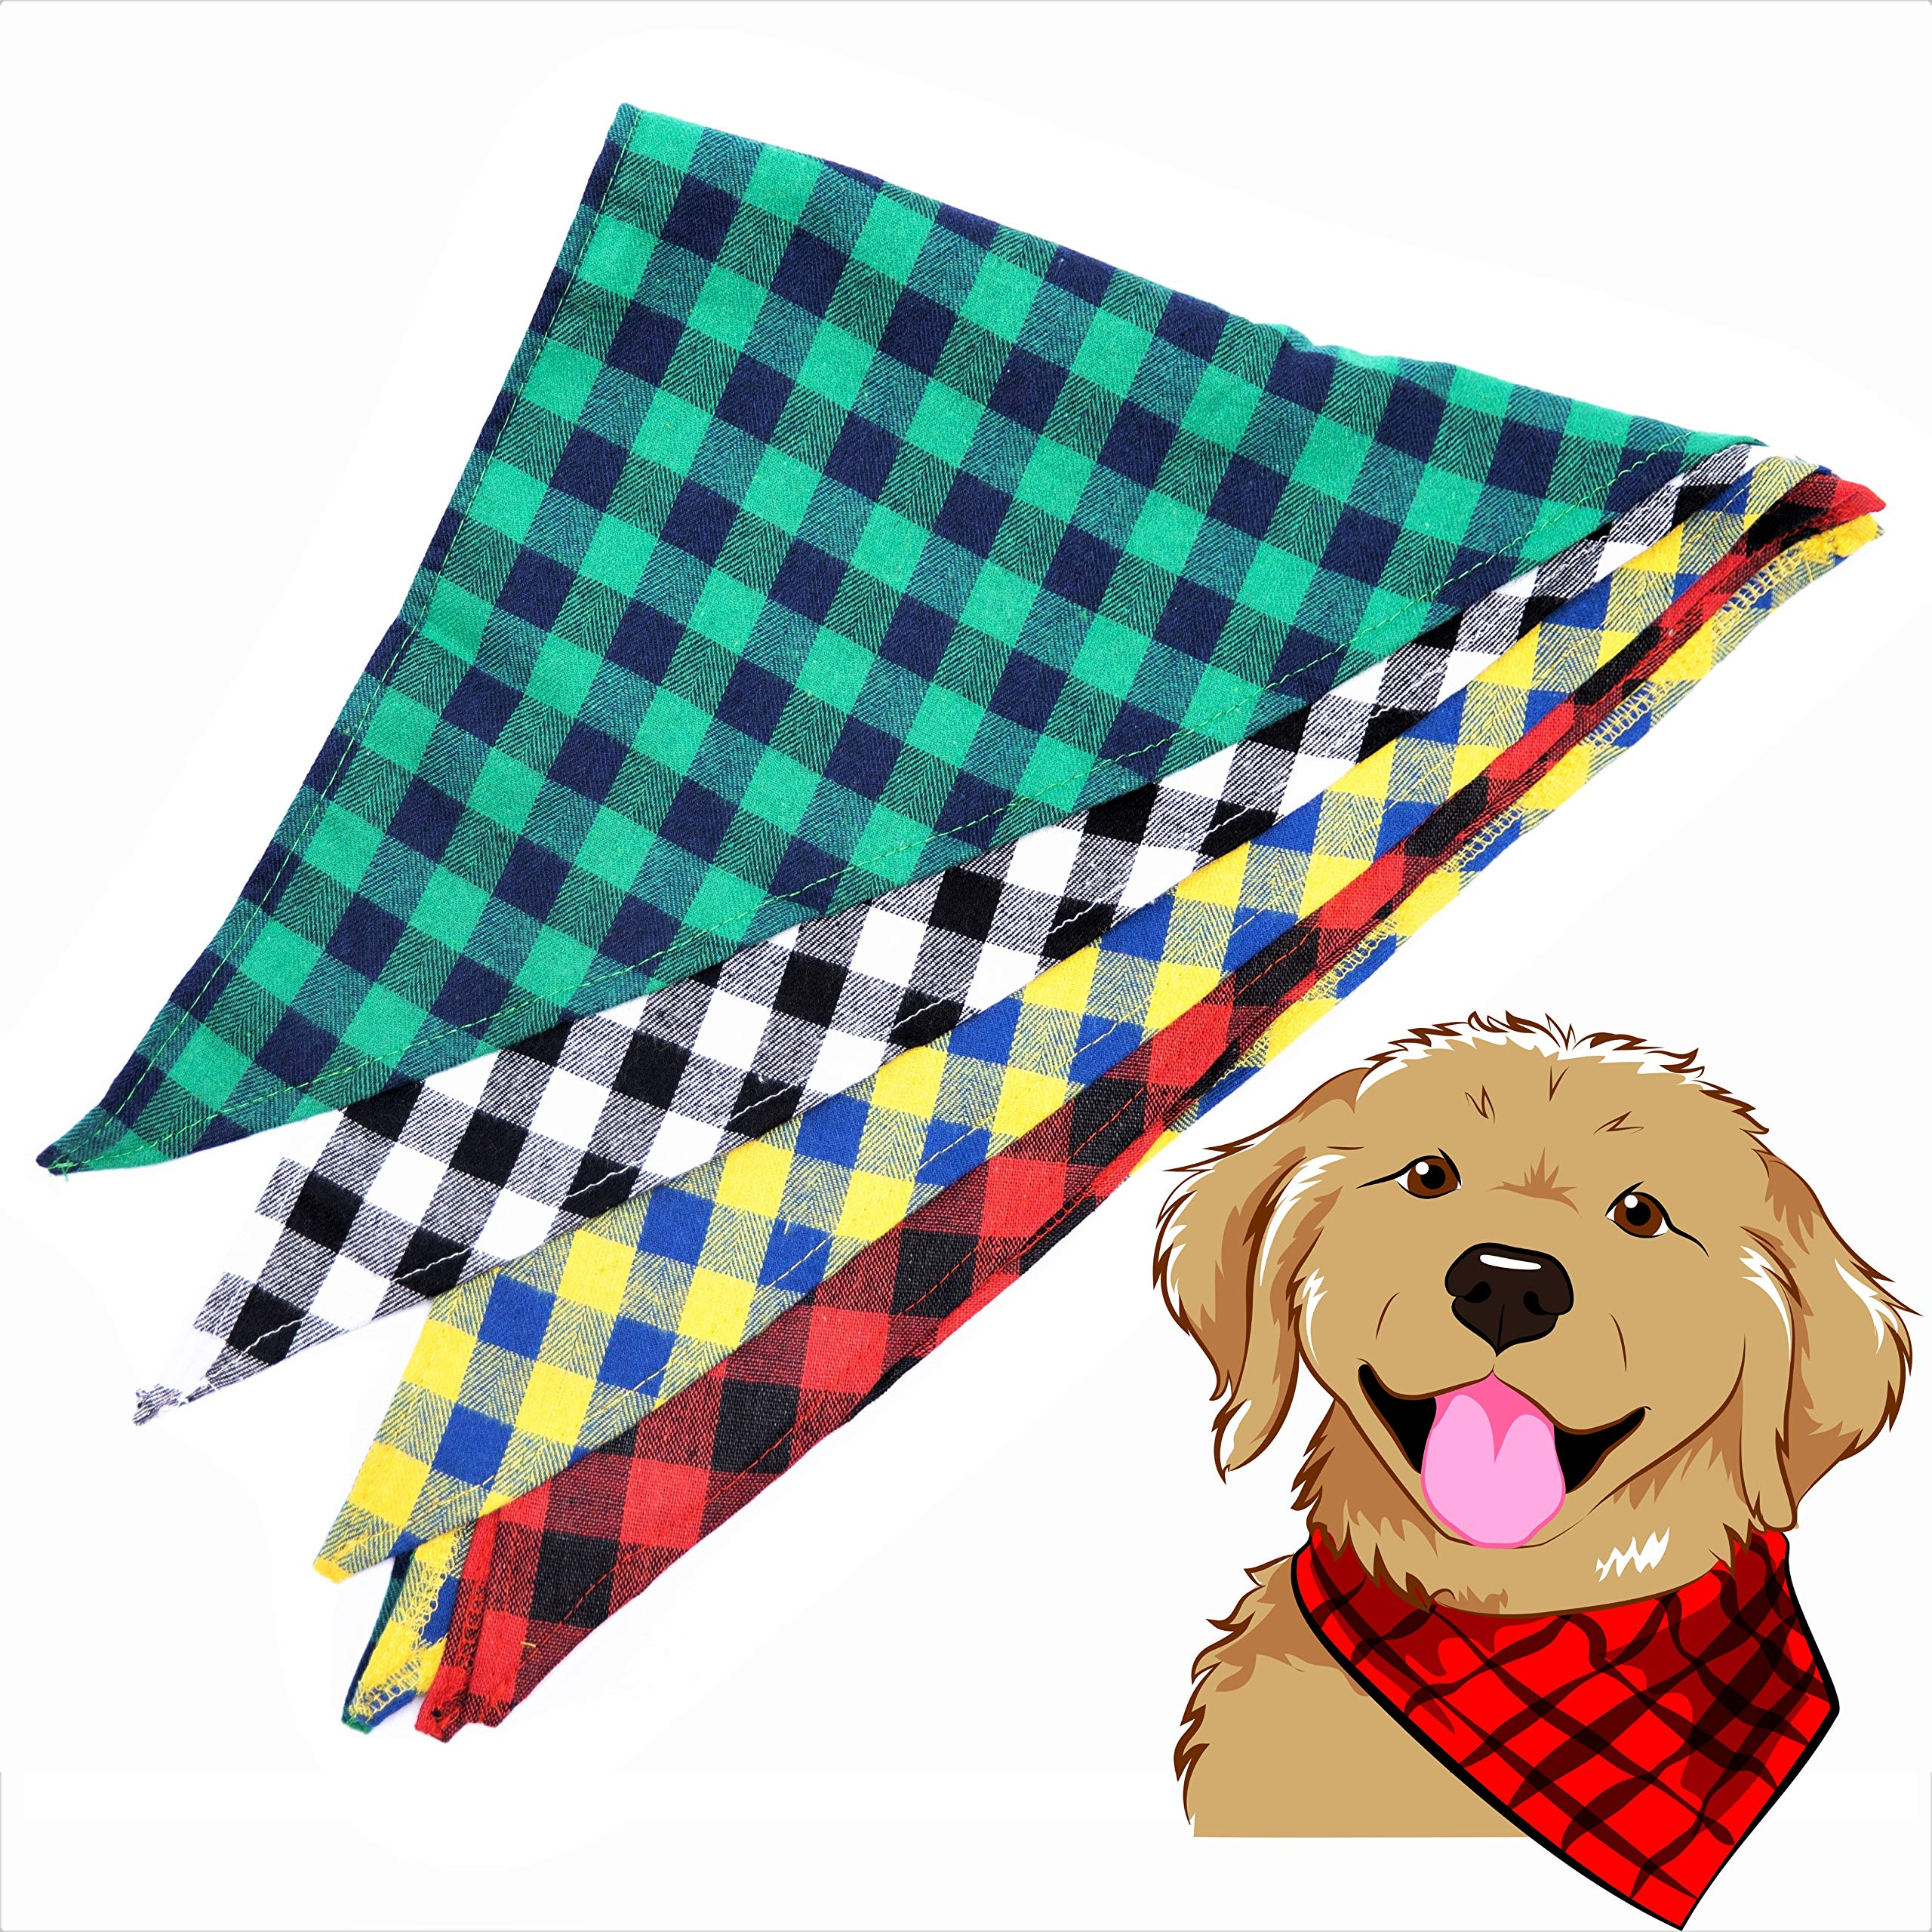 Ayschy Pet Dog Bandana Large Plaid Flannel 4 Pack - Red Green Yellow White Triangle Scarf For Small Medium Large Or Xl Dogs Holiday Accessories 4pcs Set Variety Buffalo Plaid Bibs